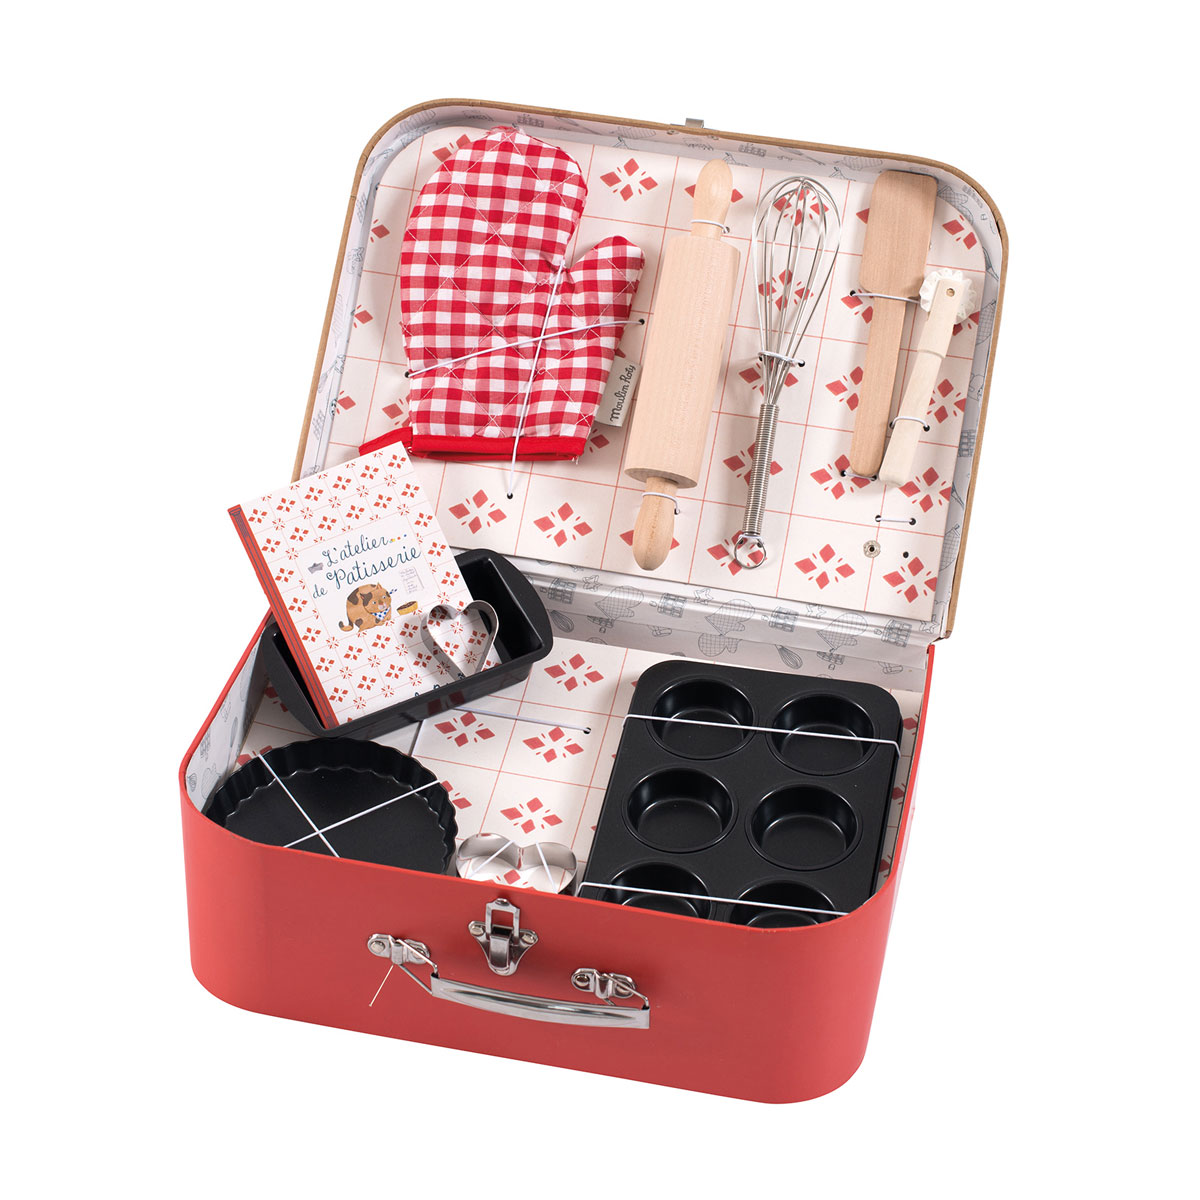 Moulin Roty L'Atelier de Patisserie Baking Set